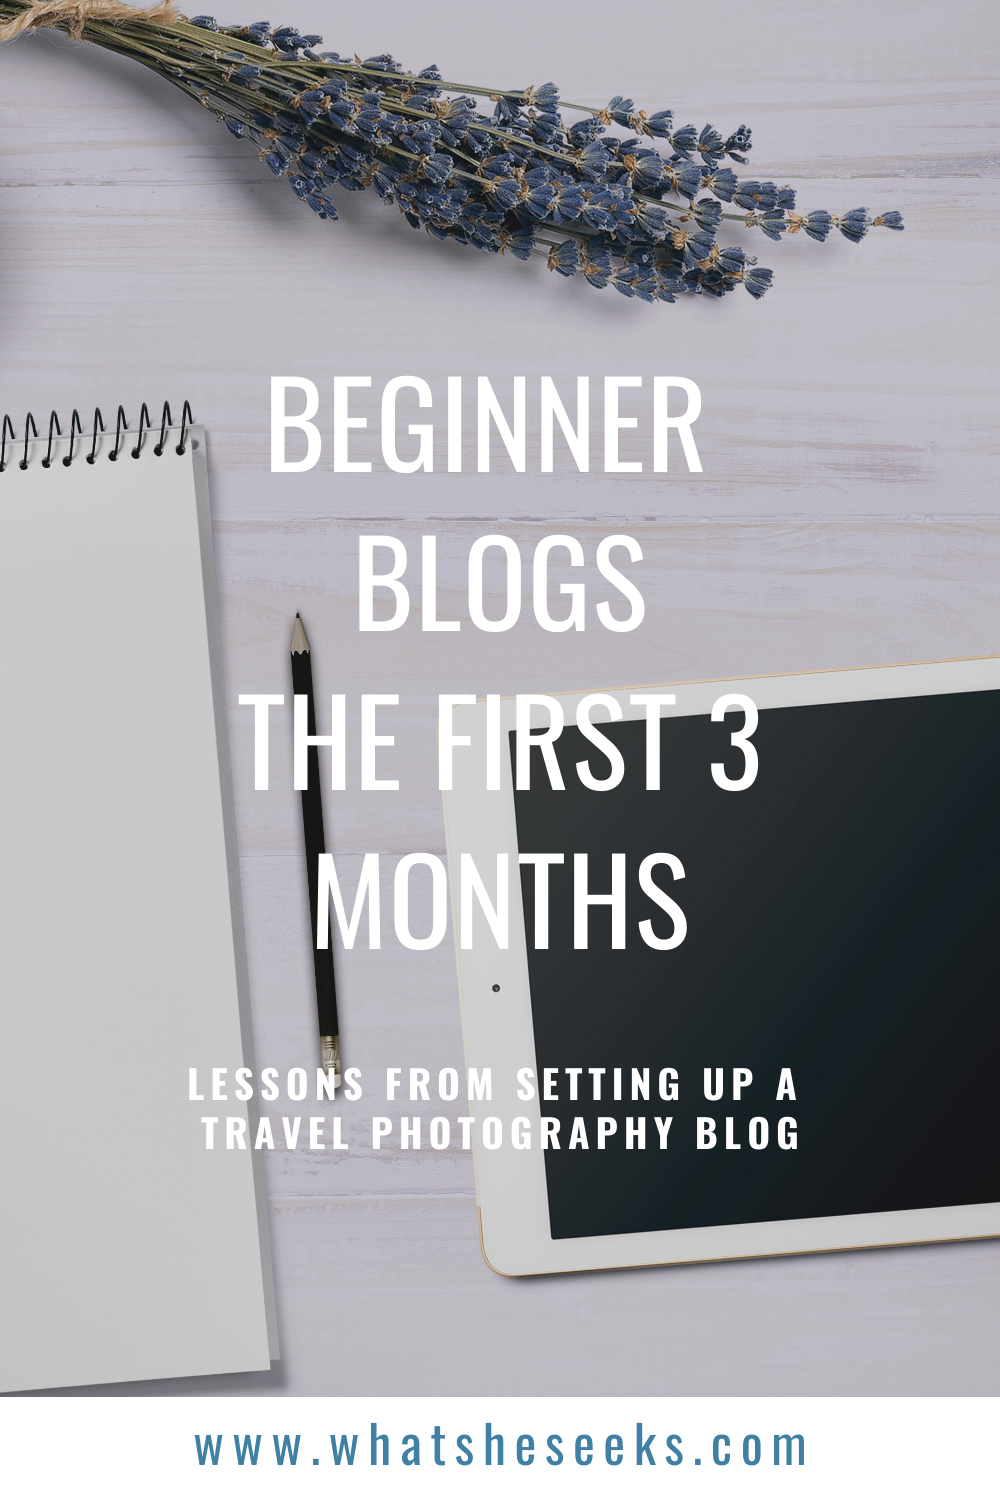 Are you setting up a new blog? Learn about what it's like to set up a new travel photography blog, learning SEO for blogs, Pinterest Strategy, Branding a website and other creative ideas to become a succesful blogger. The first 3 months of blog life. #whatsheseeks